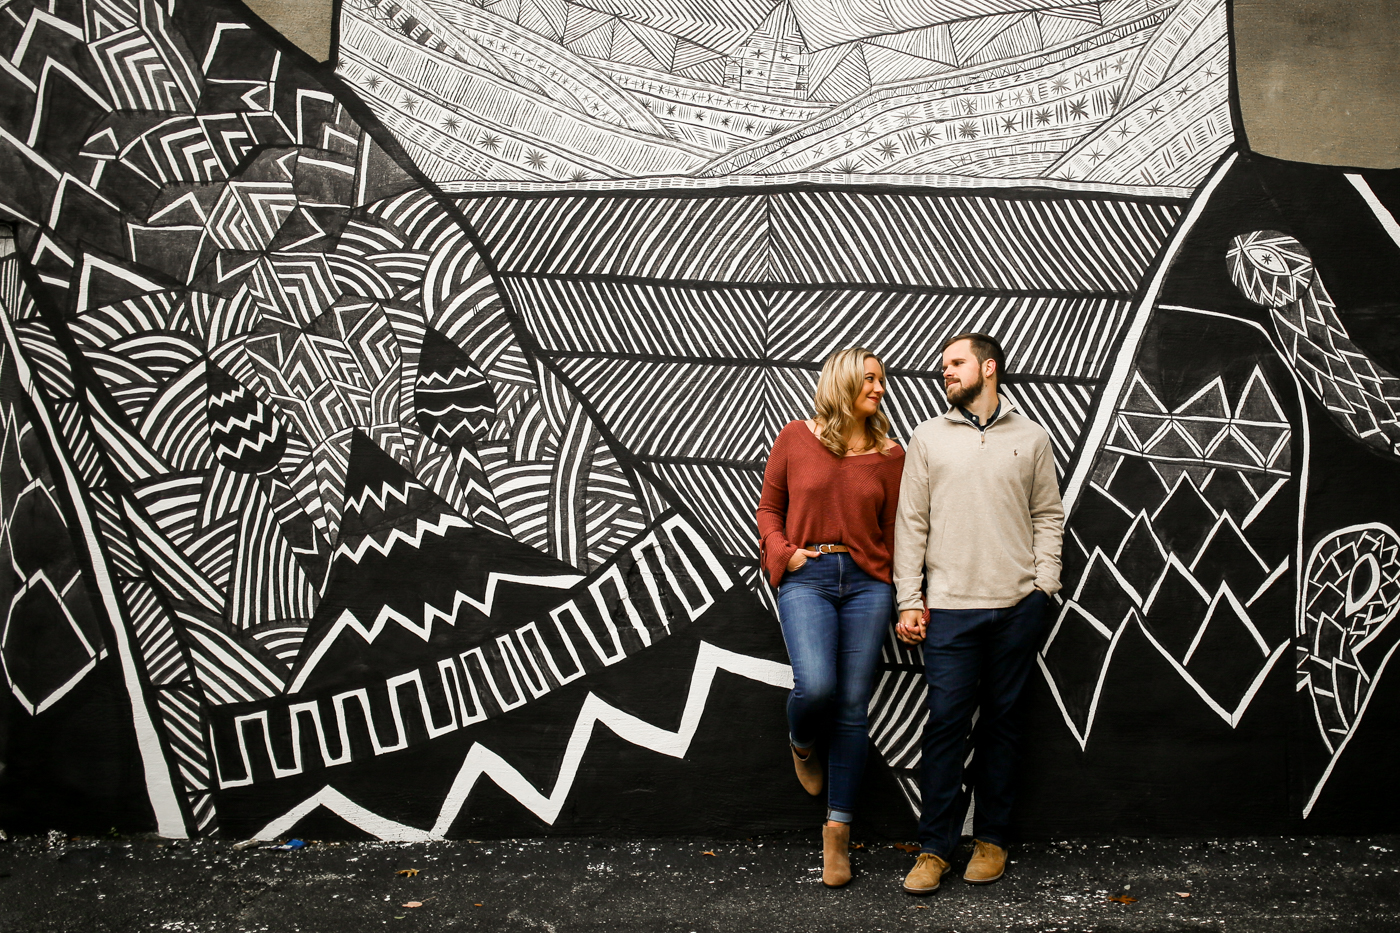 Downtown-Lexington-Mural-Prhtbn-Dog-Engagement-Wedding-Photography-11.jpg